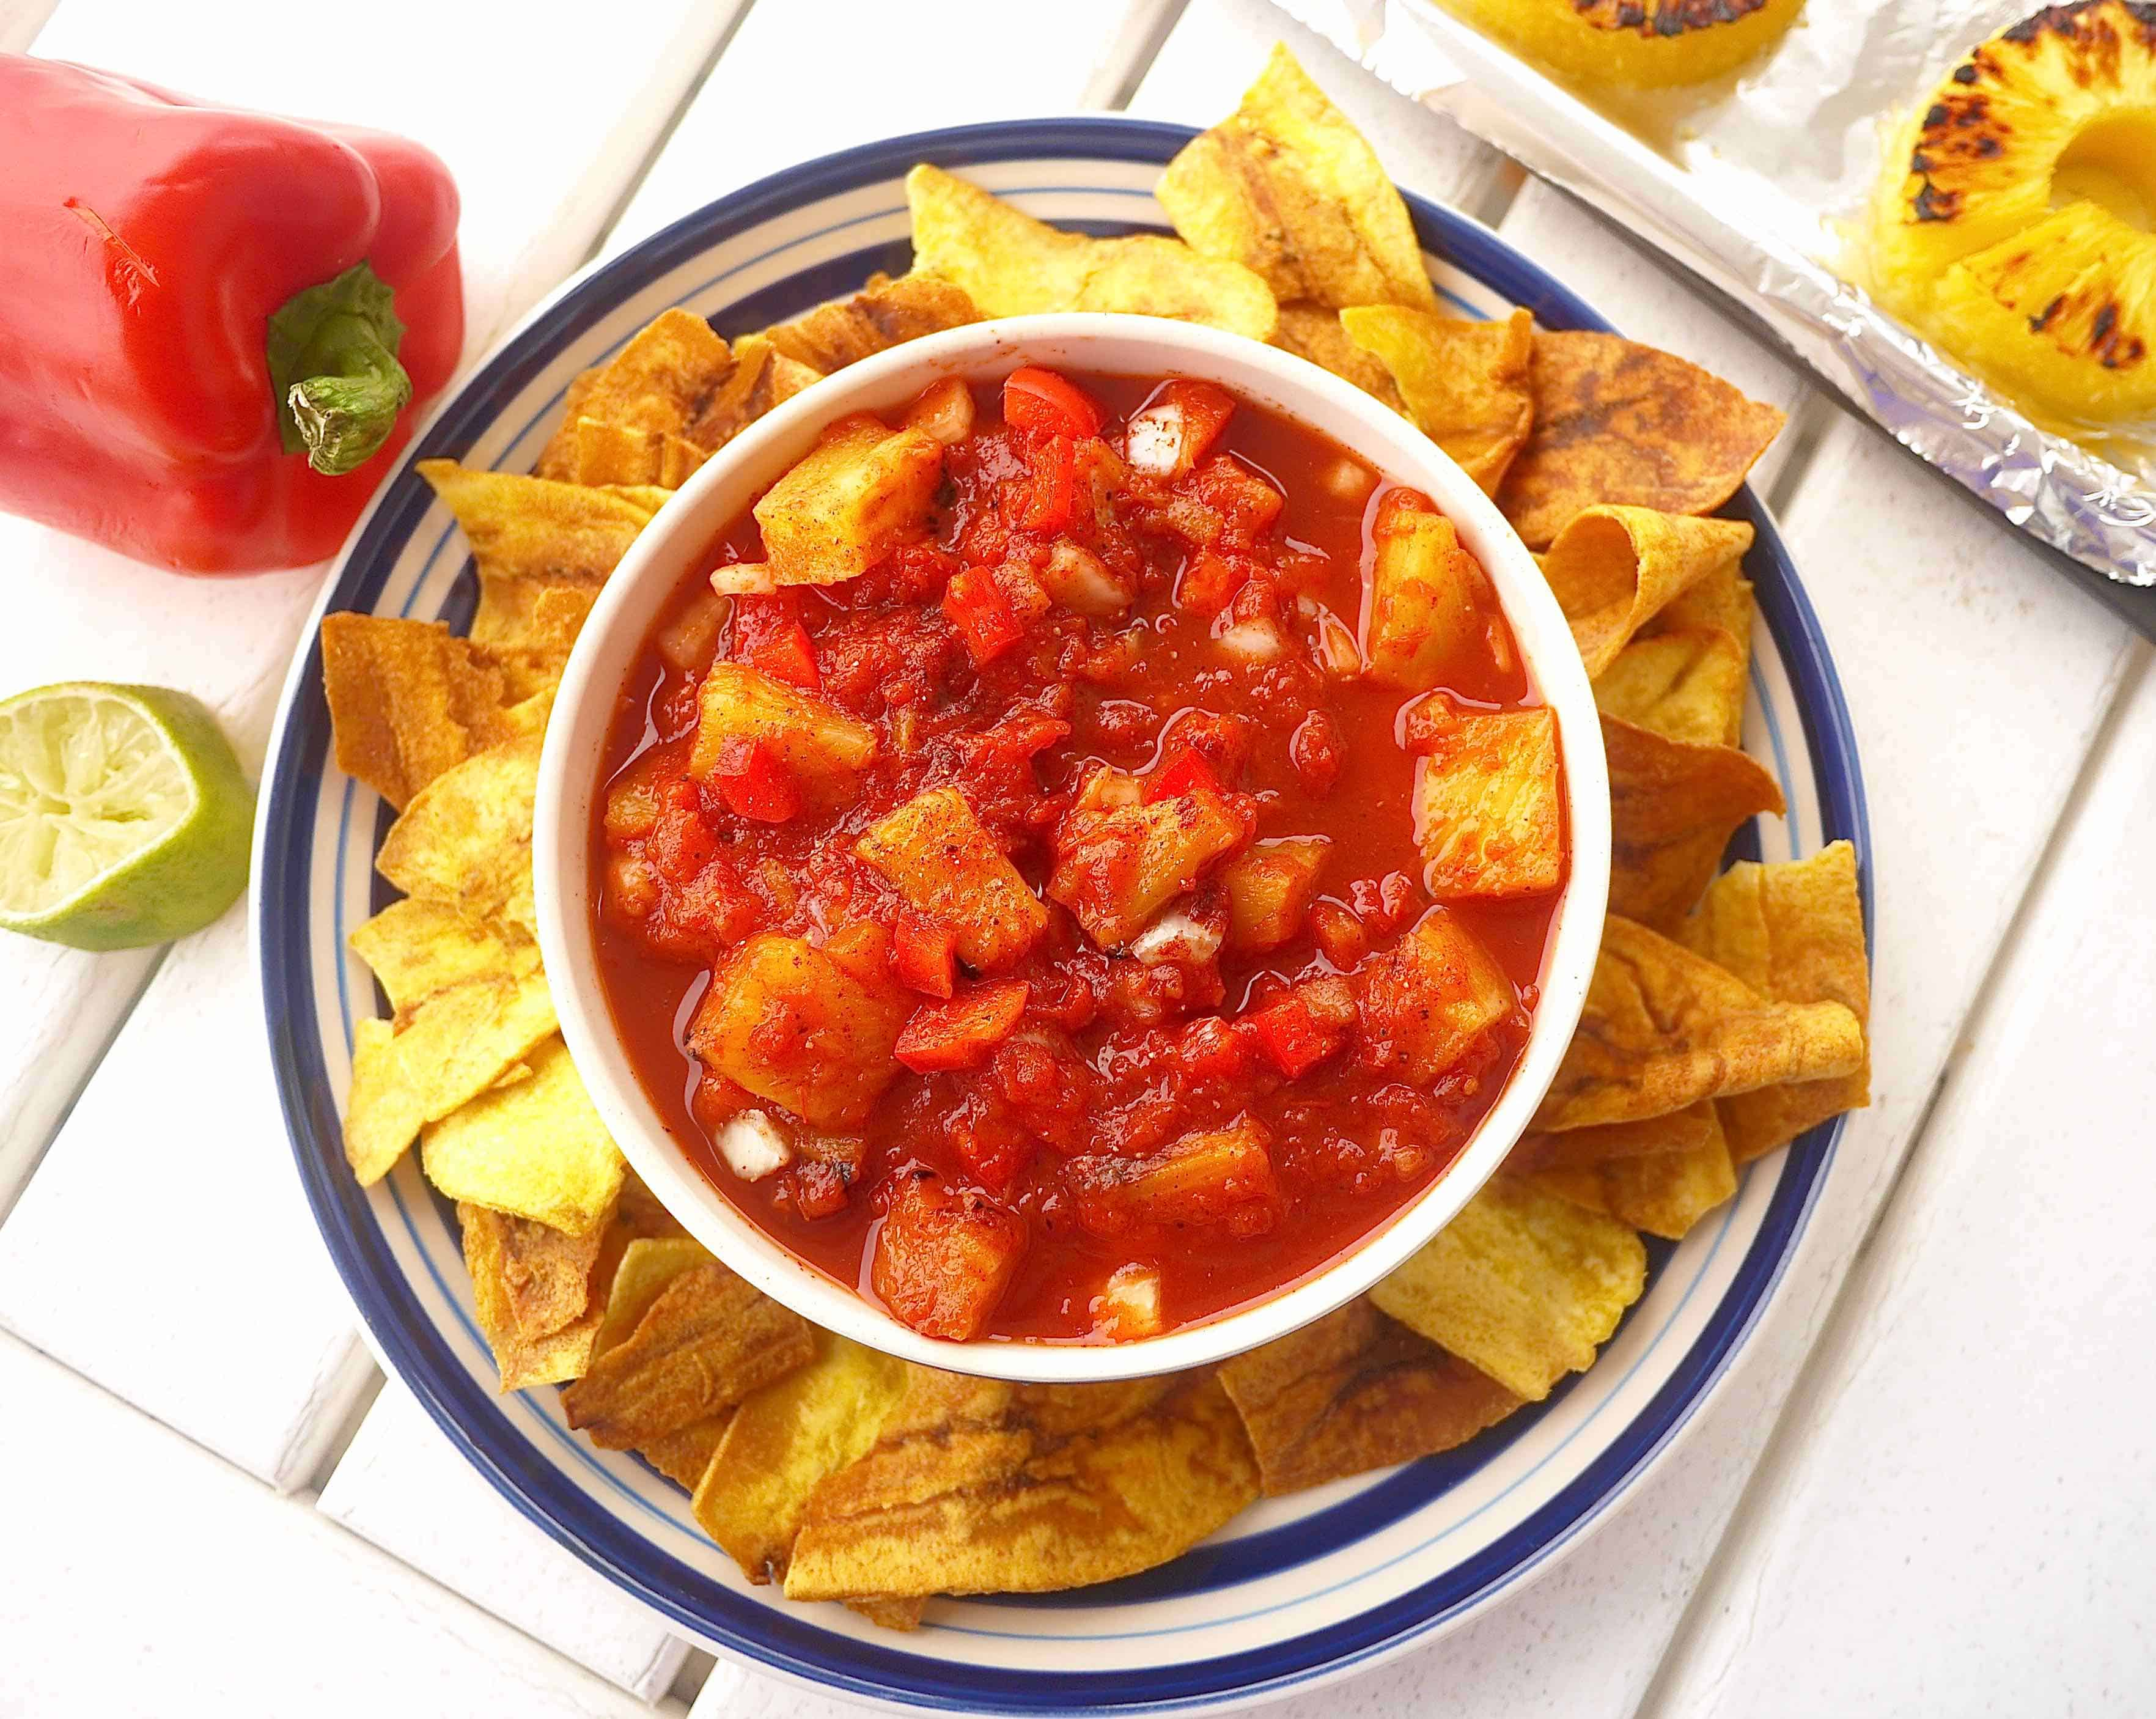 This Grilled Pineapple Salsa (paleo, GF) is perfect for football season!   Perchance to Cook, www.perchancetocook.com